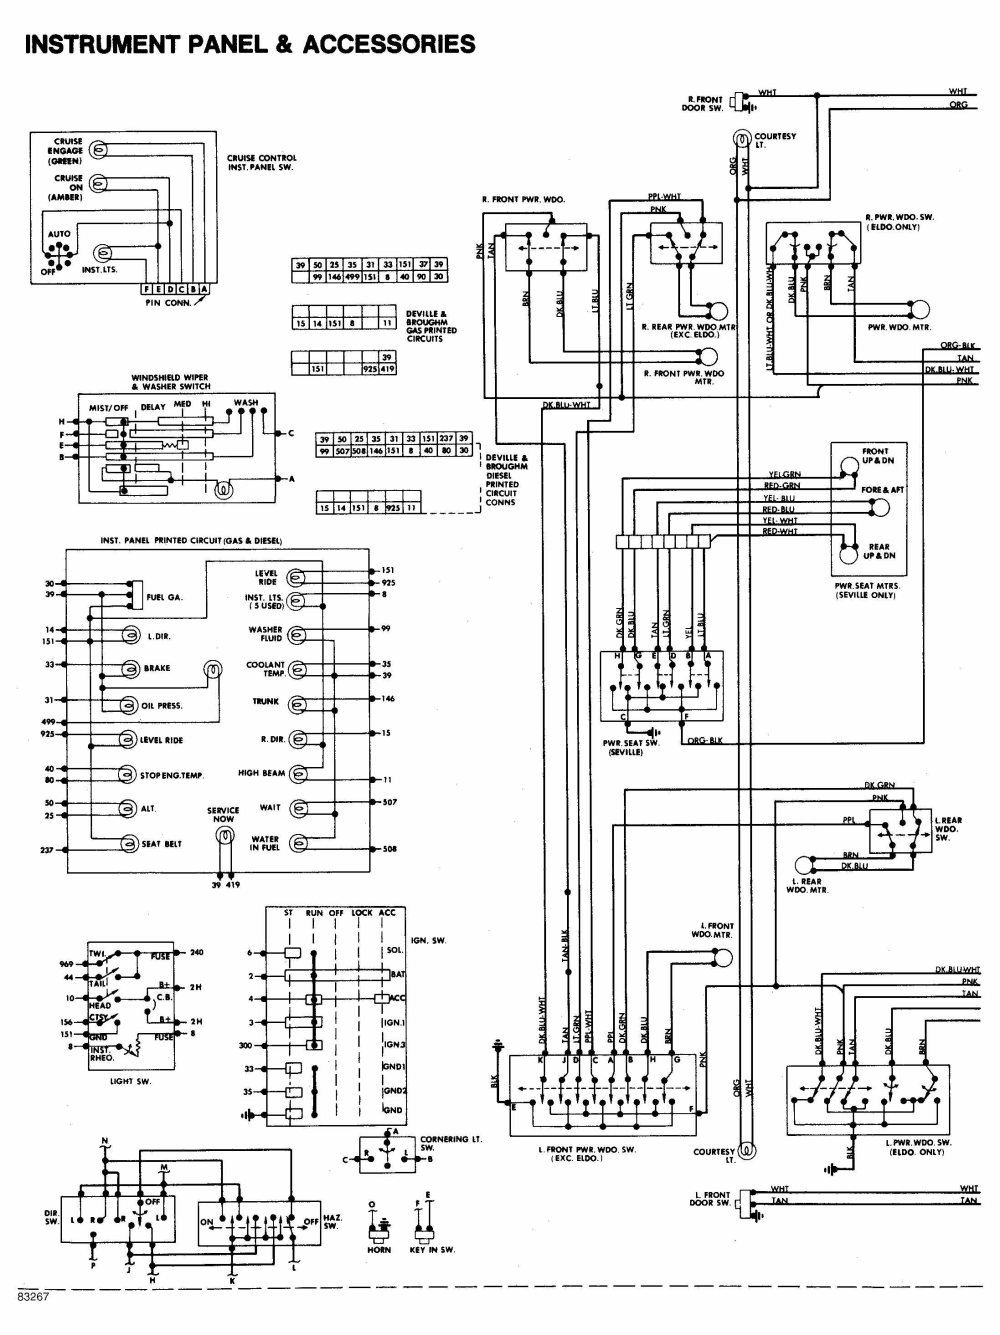 medium resolution of 2003 cadillac deville wiring harness schematic diagram database 2000 cadillac deville wiring harness diagram